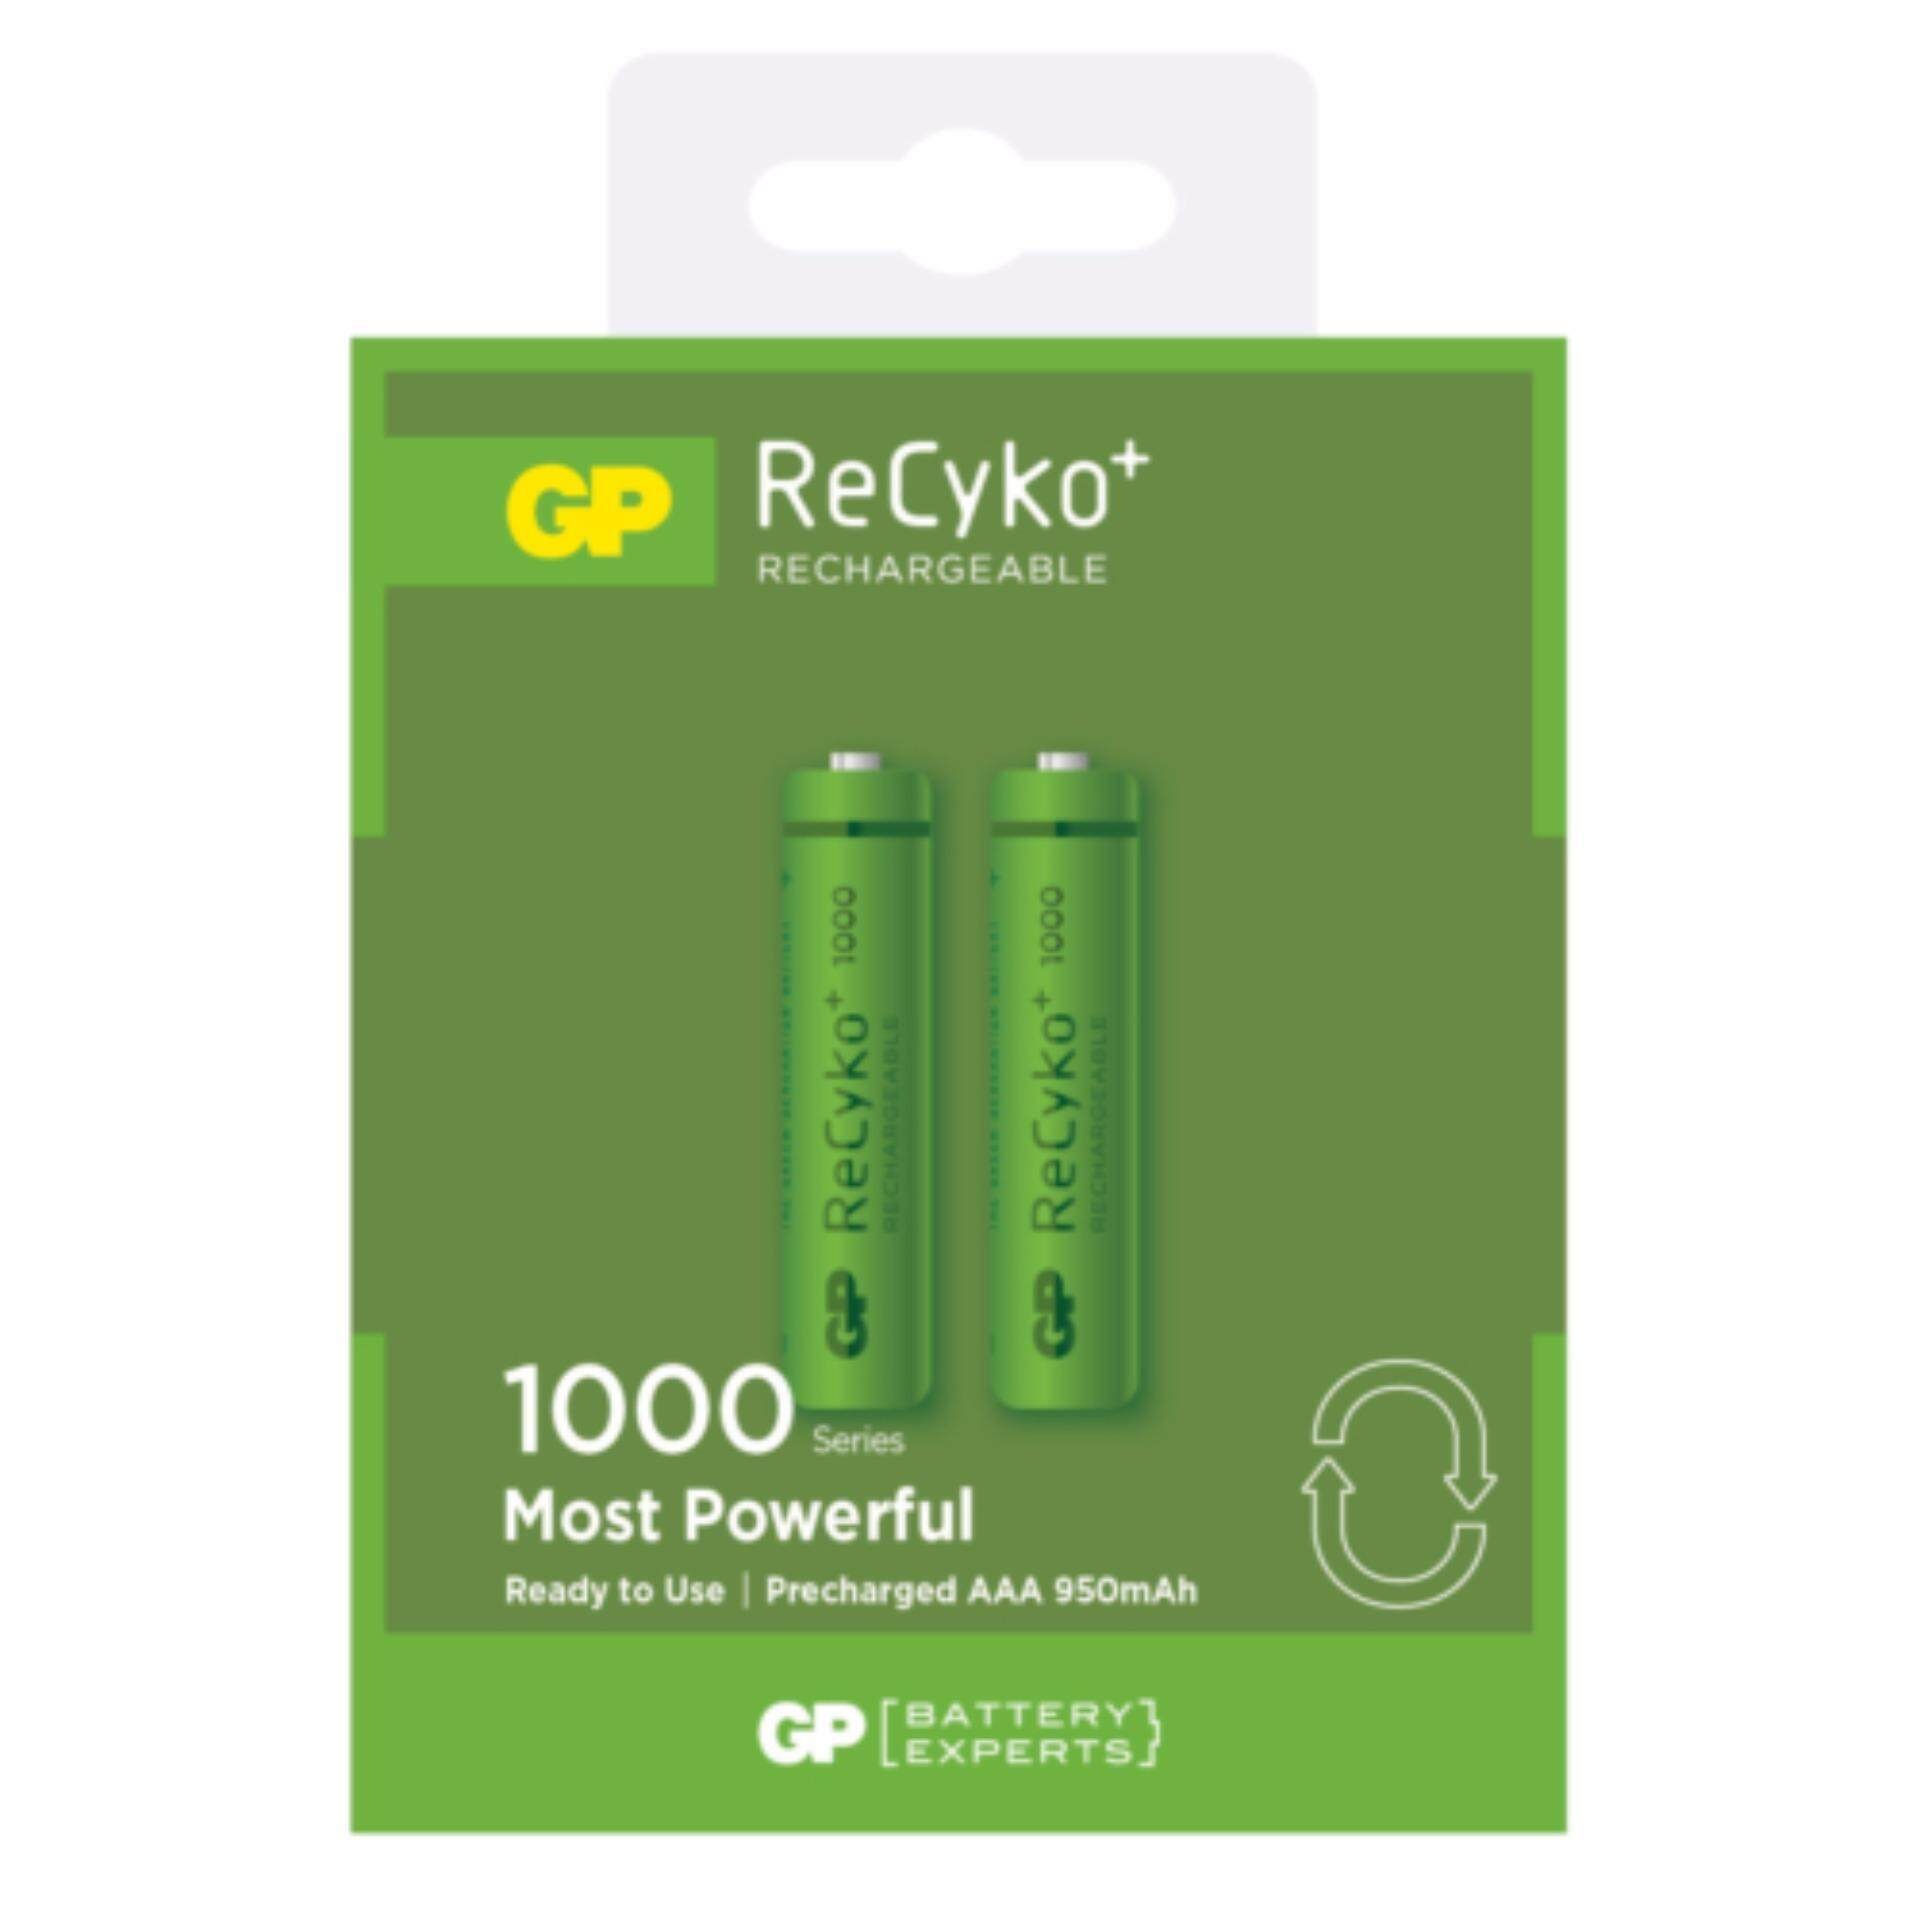 GP Batteries ReCyko+ Rechar...